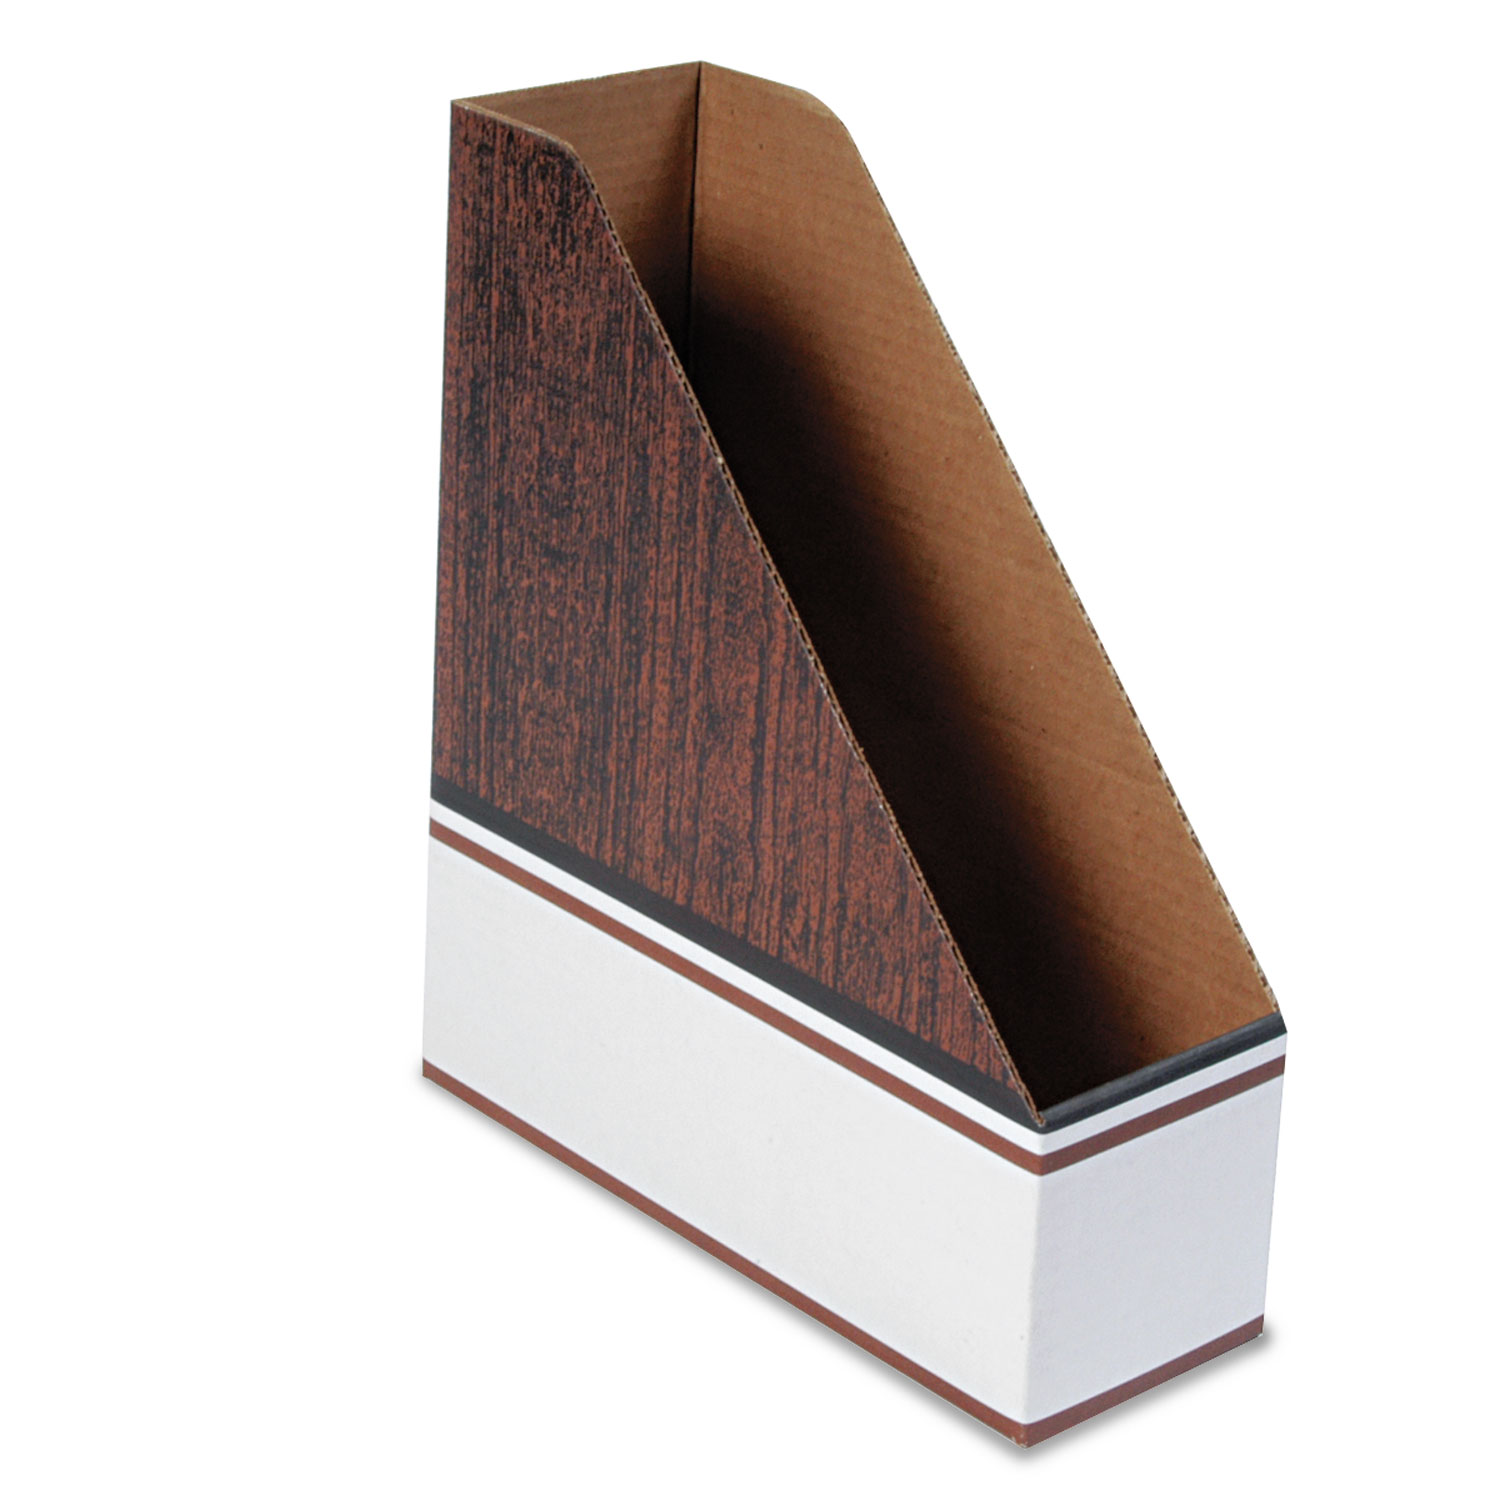 Corrugated Cardboard Magazine File, 4 X 11 X 12 3/4, Wood Grain, 12/Carton